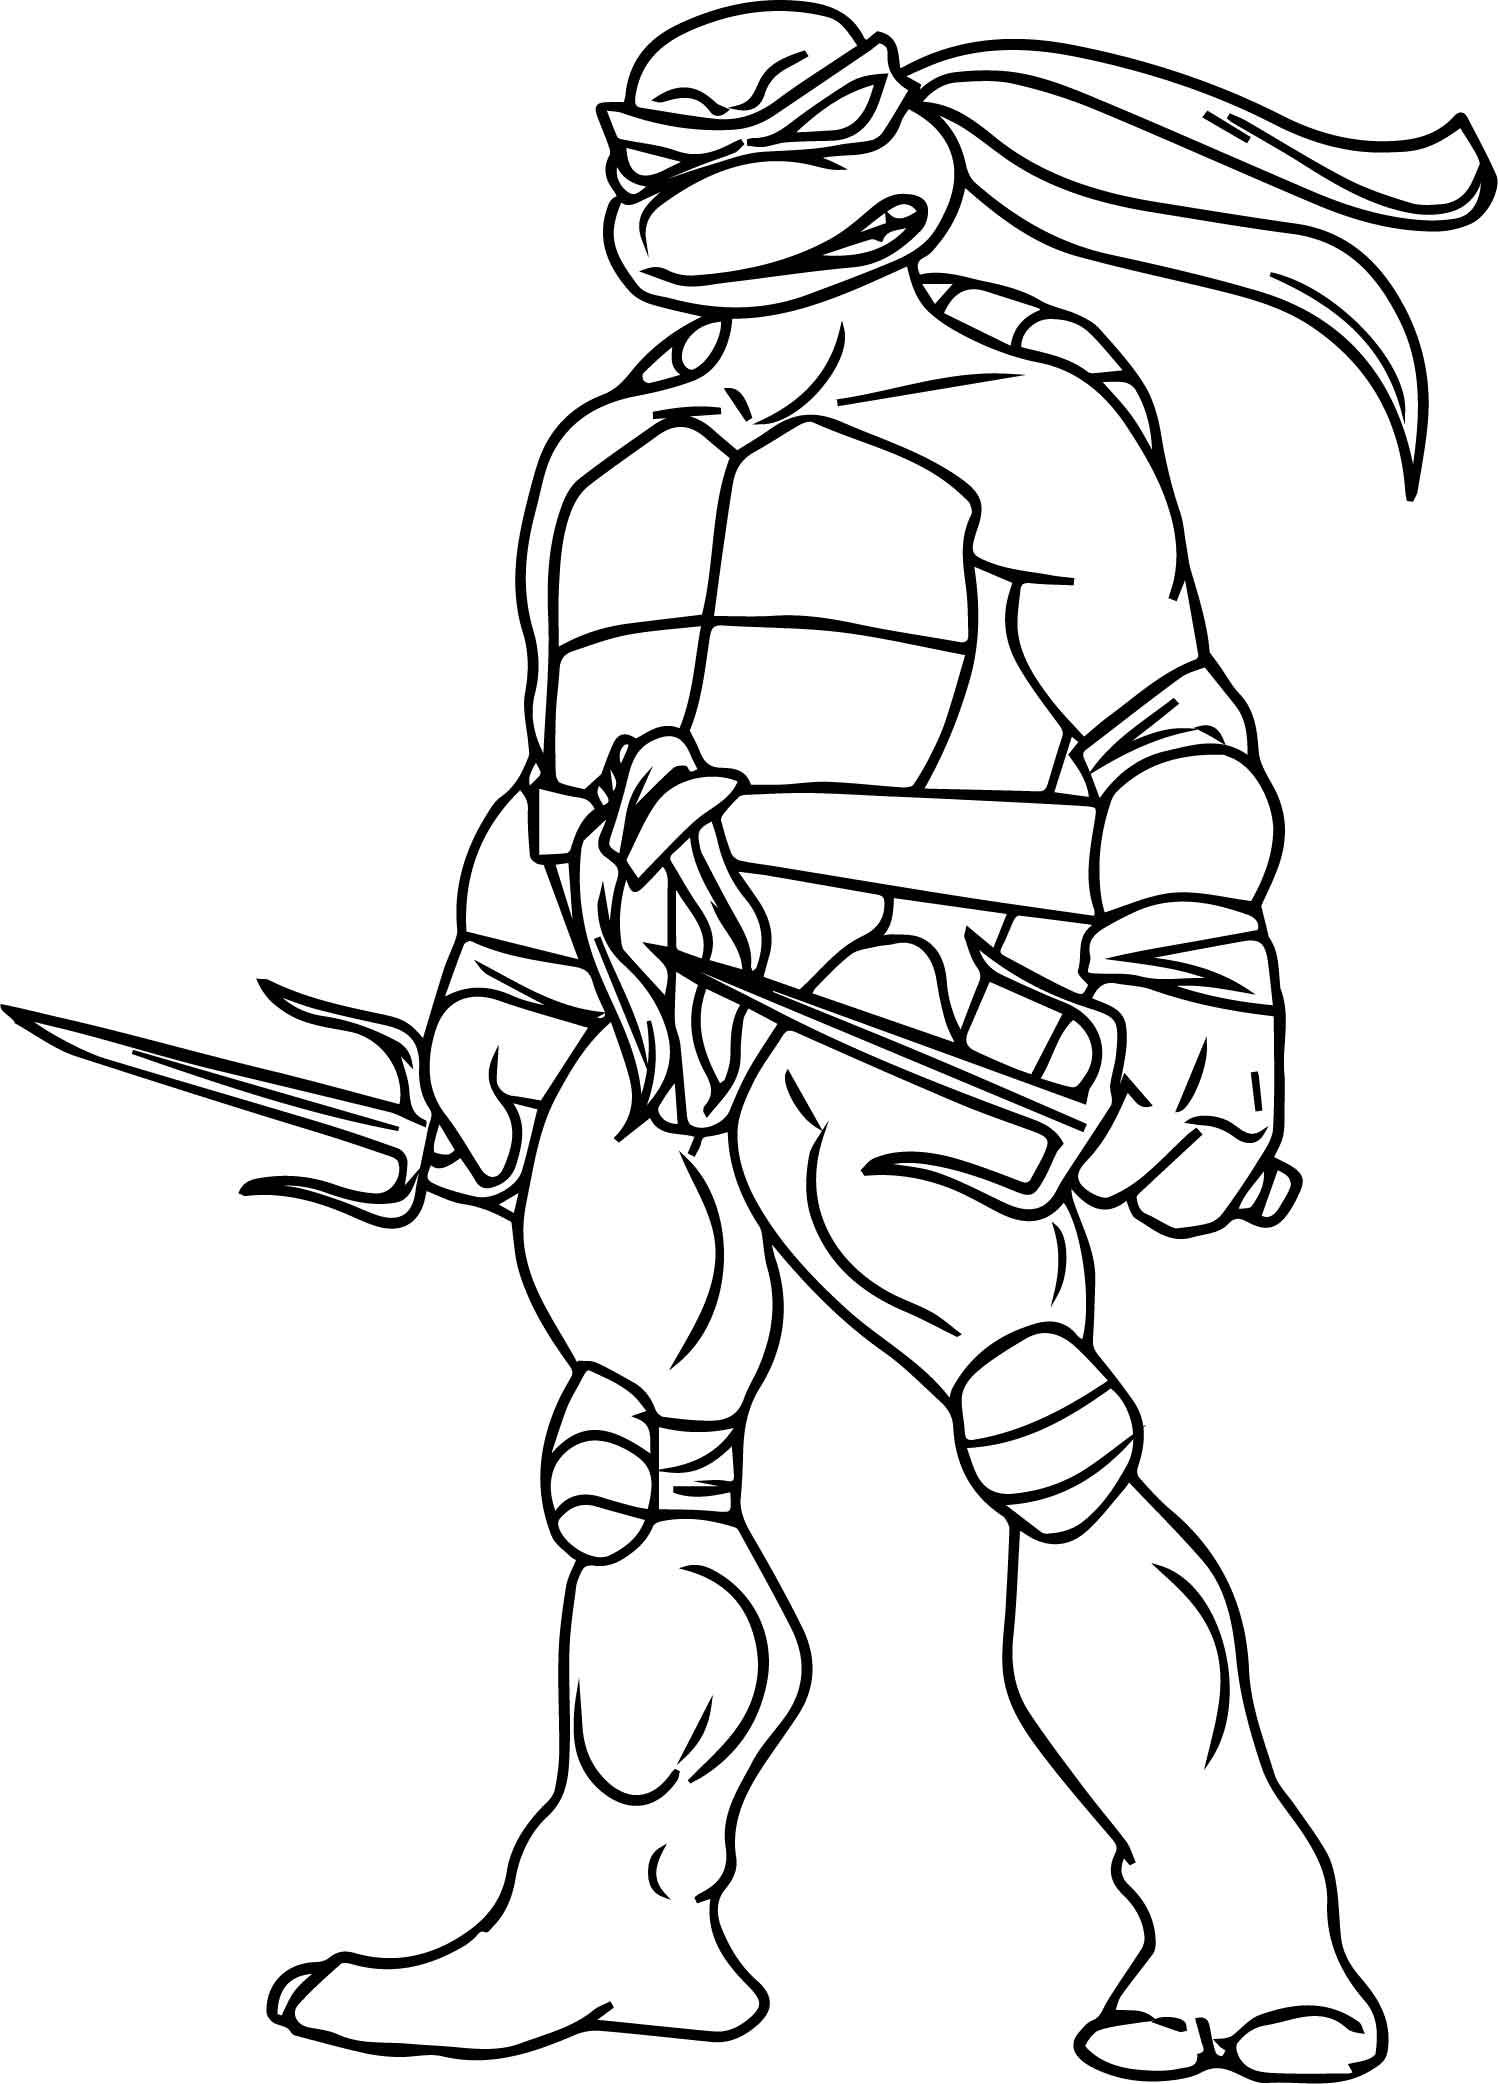 Cool The Teenage Mutant Ninja Turtles Blade Coloring Page Ninja